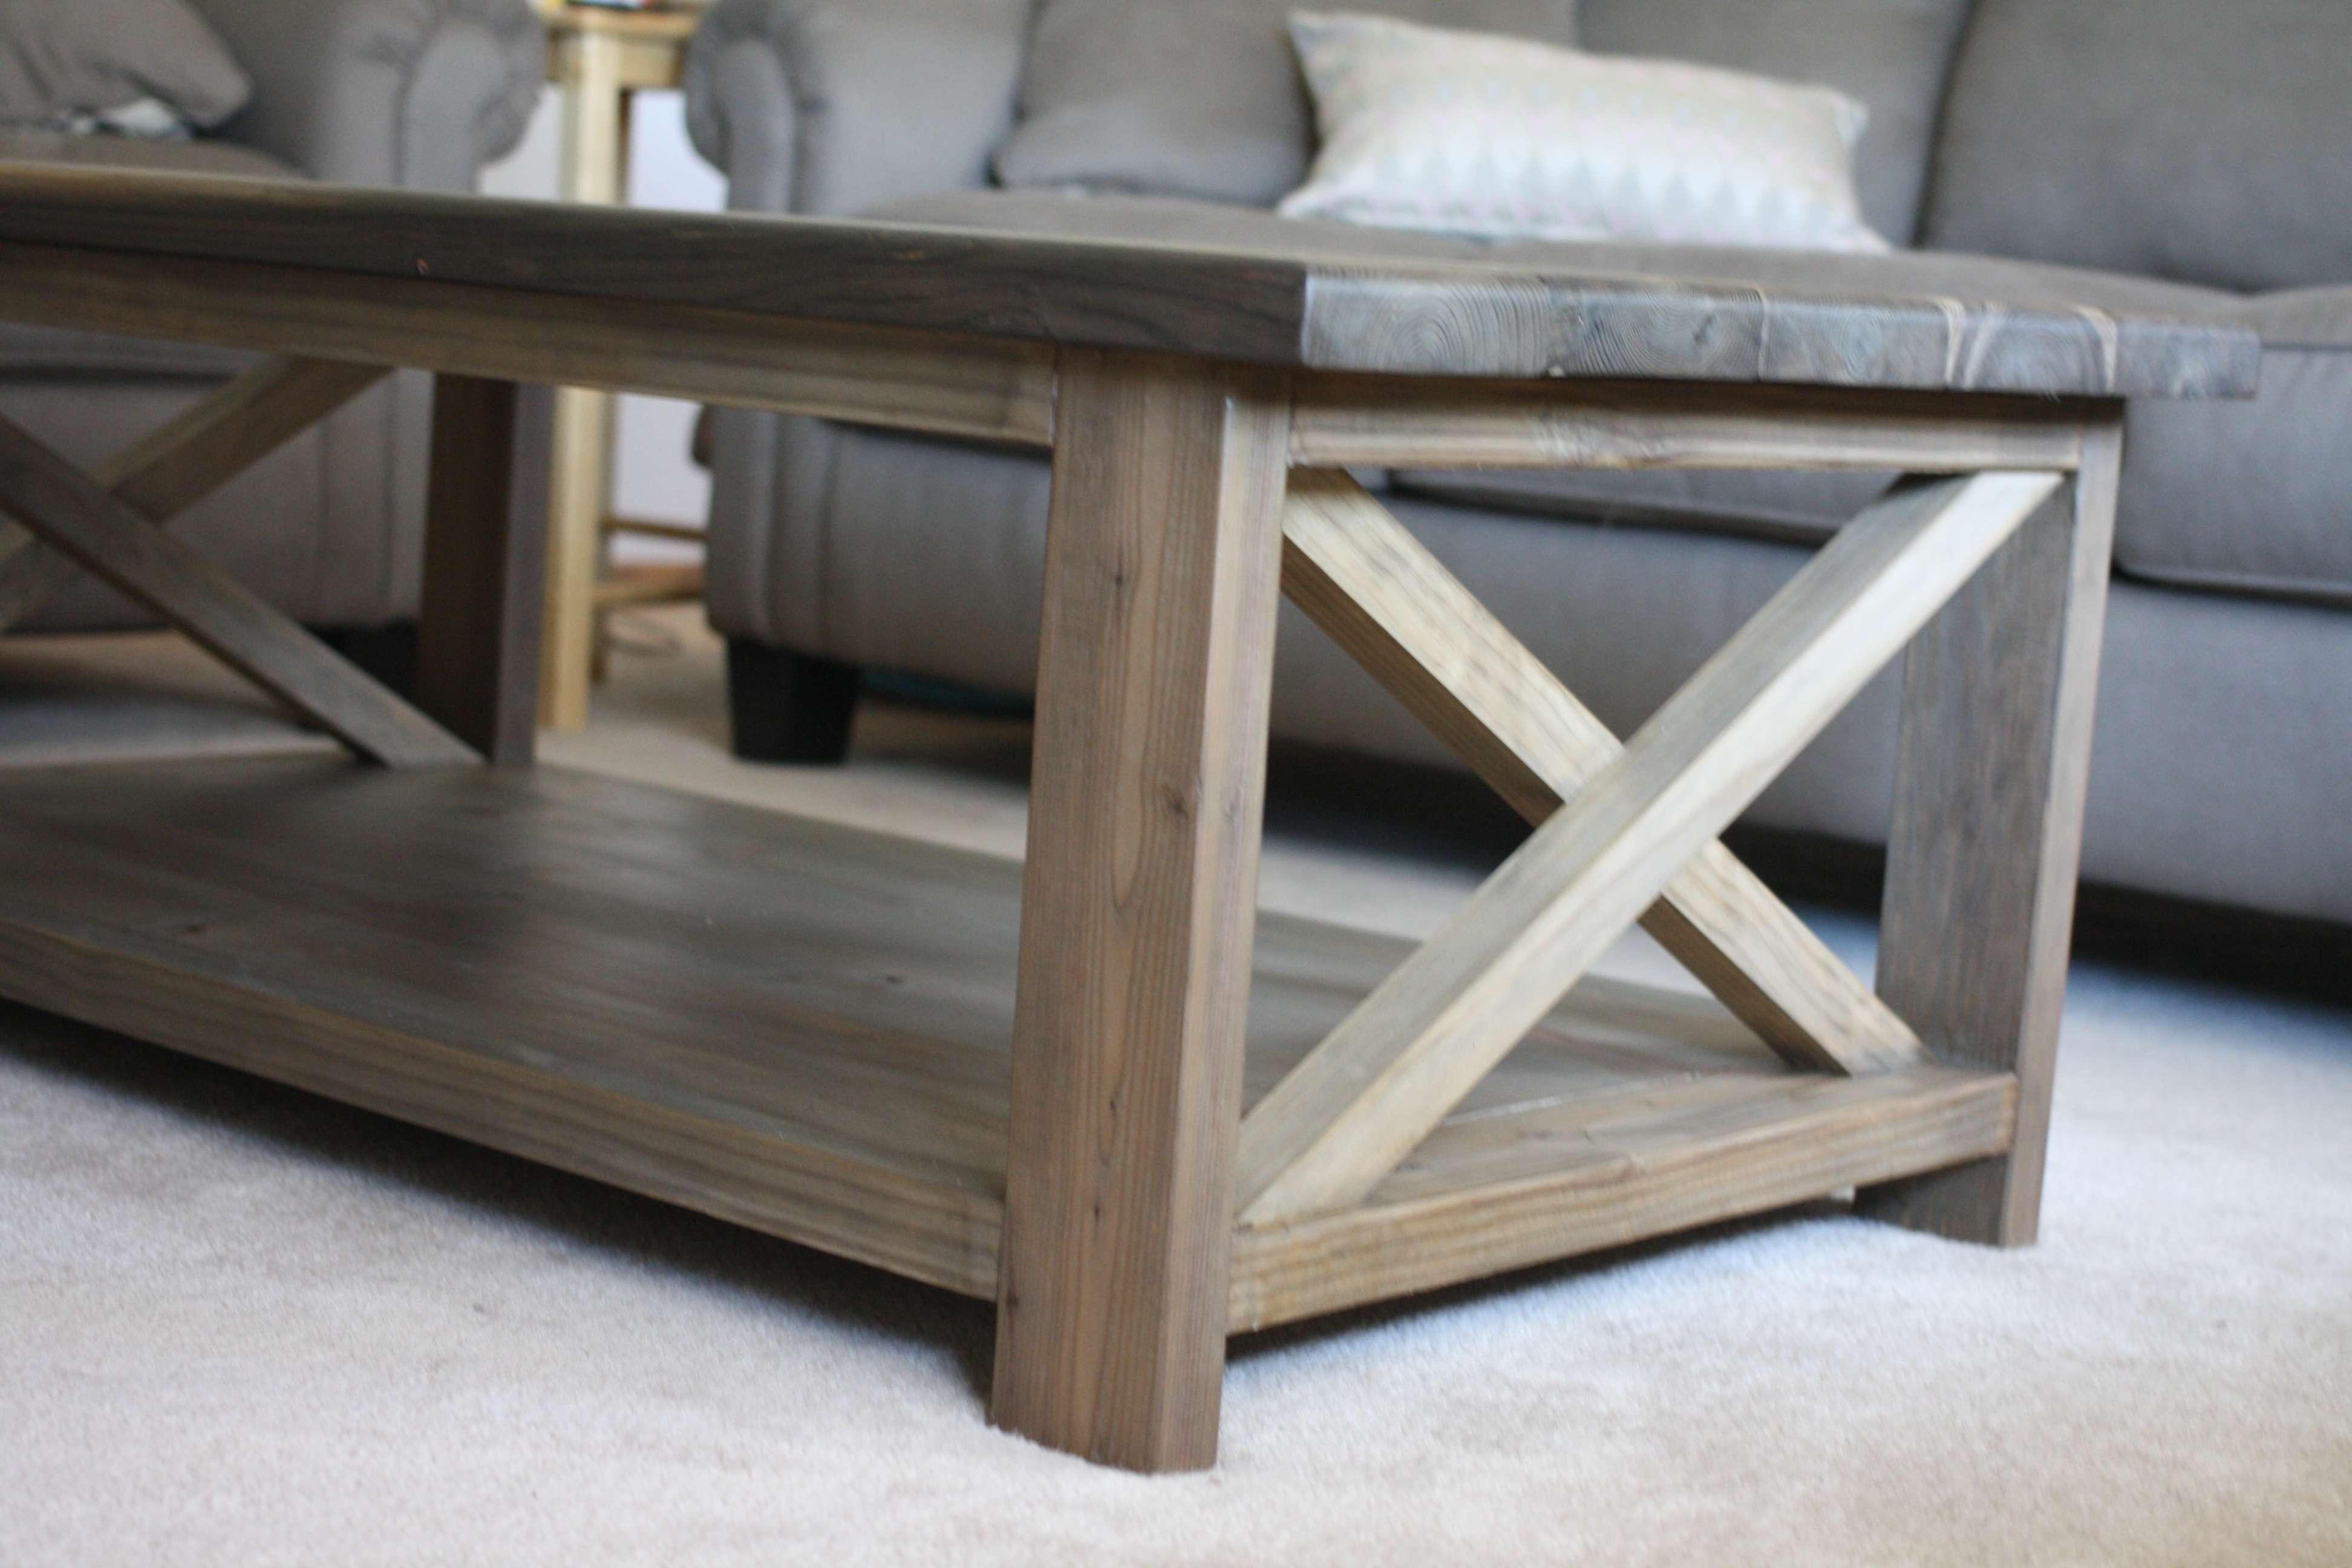 Rustic X Coffee Table – Diy Projects With Regard To Well Known Rustic Wooden Coffee Tables (View 7 of 20)